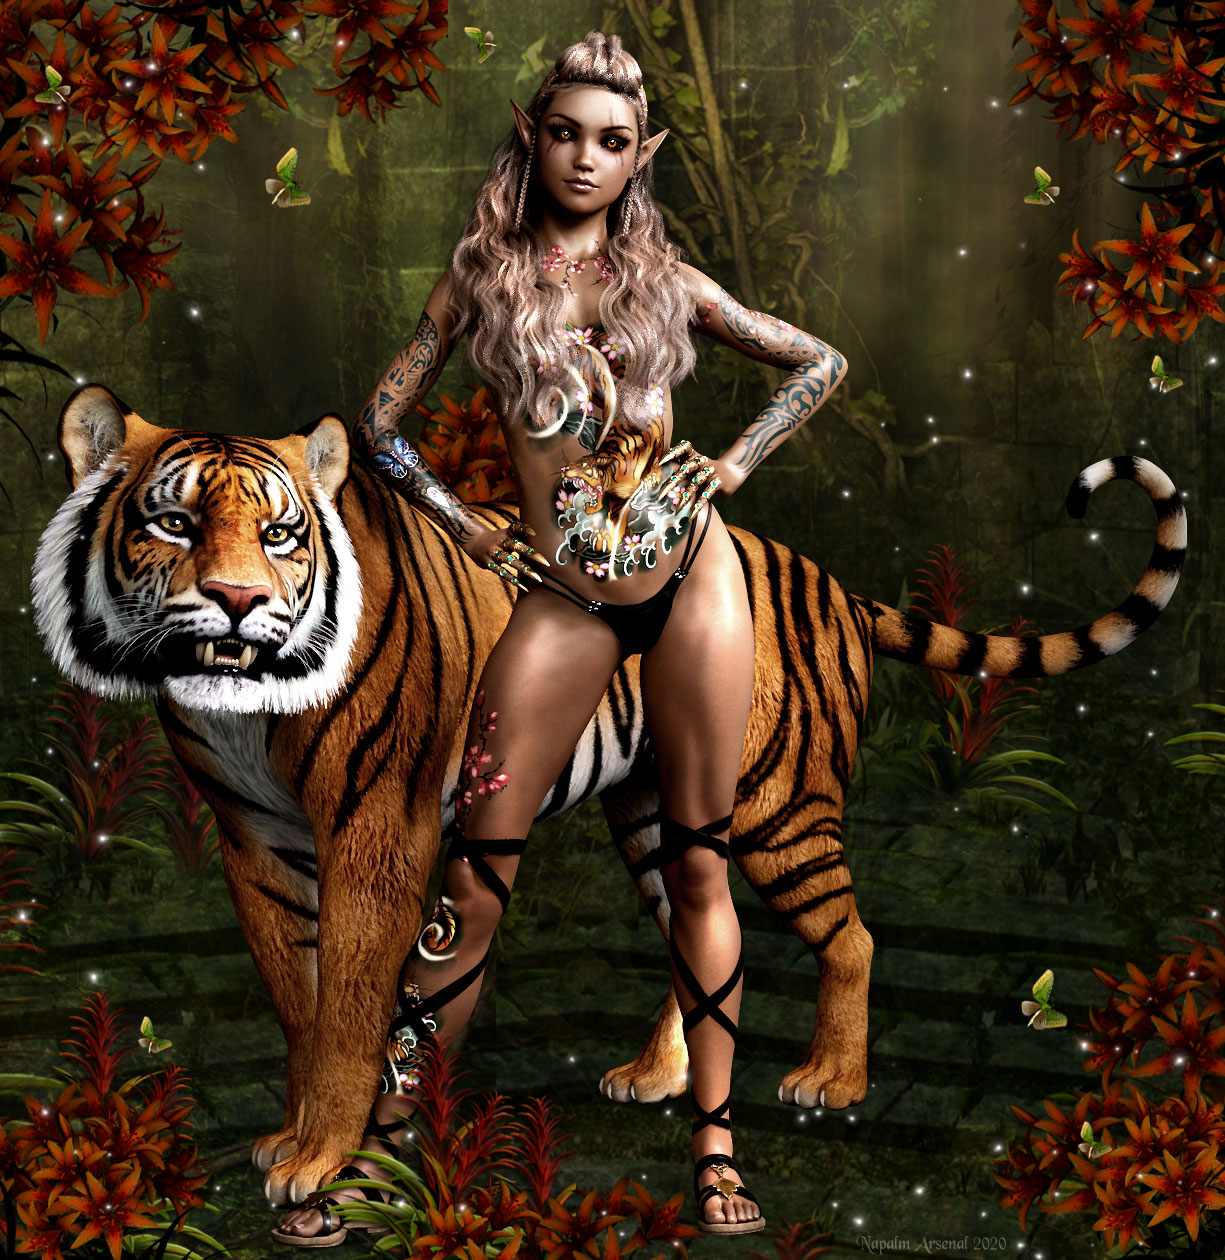 The Girl With The Tiger Tatto SML V1.jpg